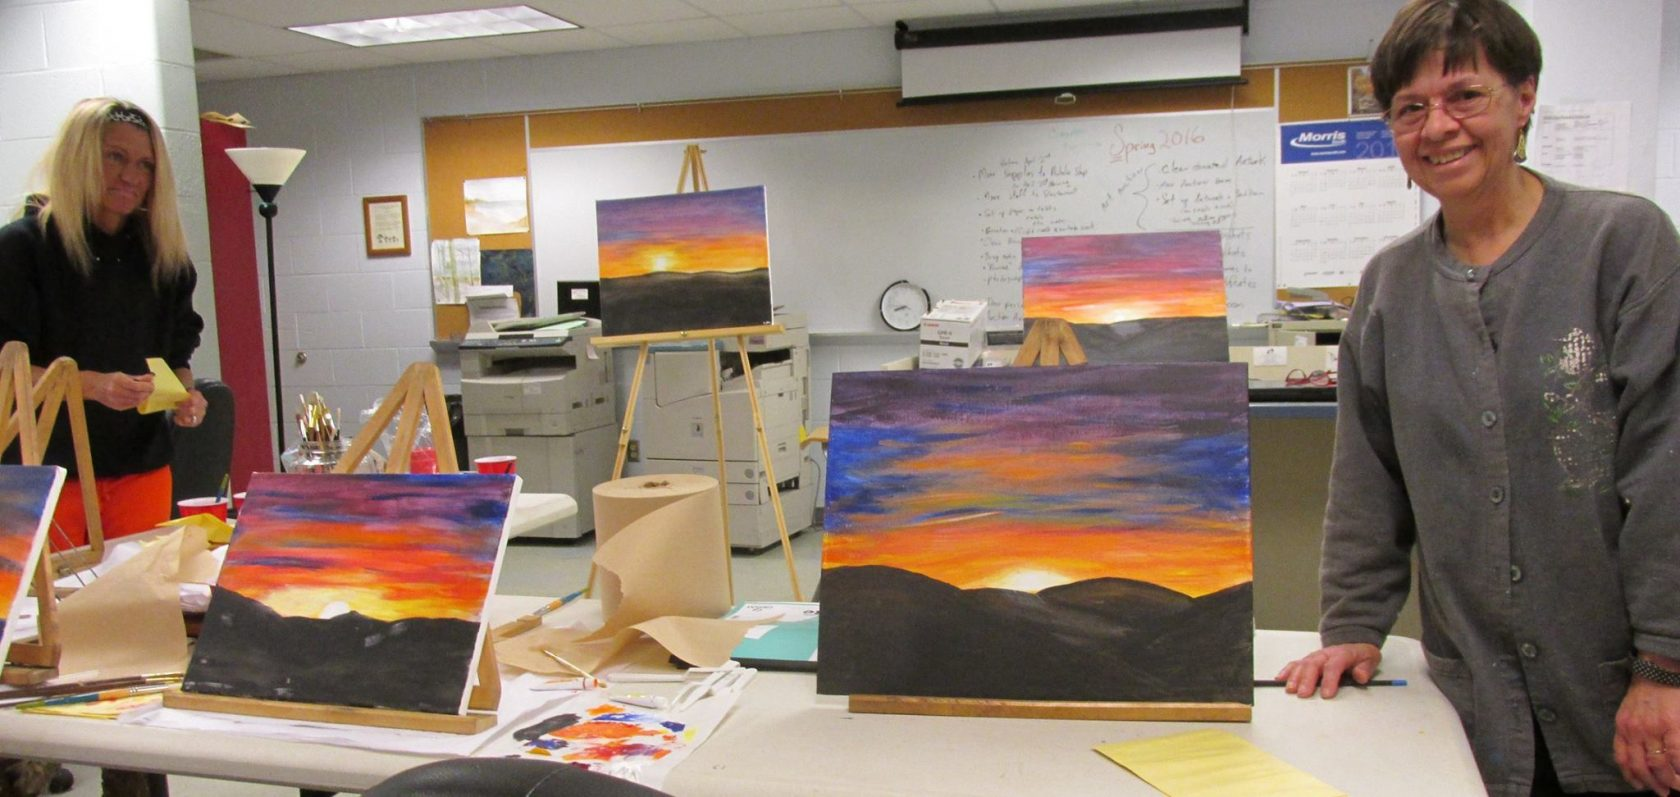 Painting and music events benefit adult education in the Hilltowns